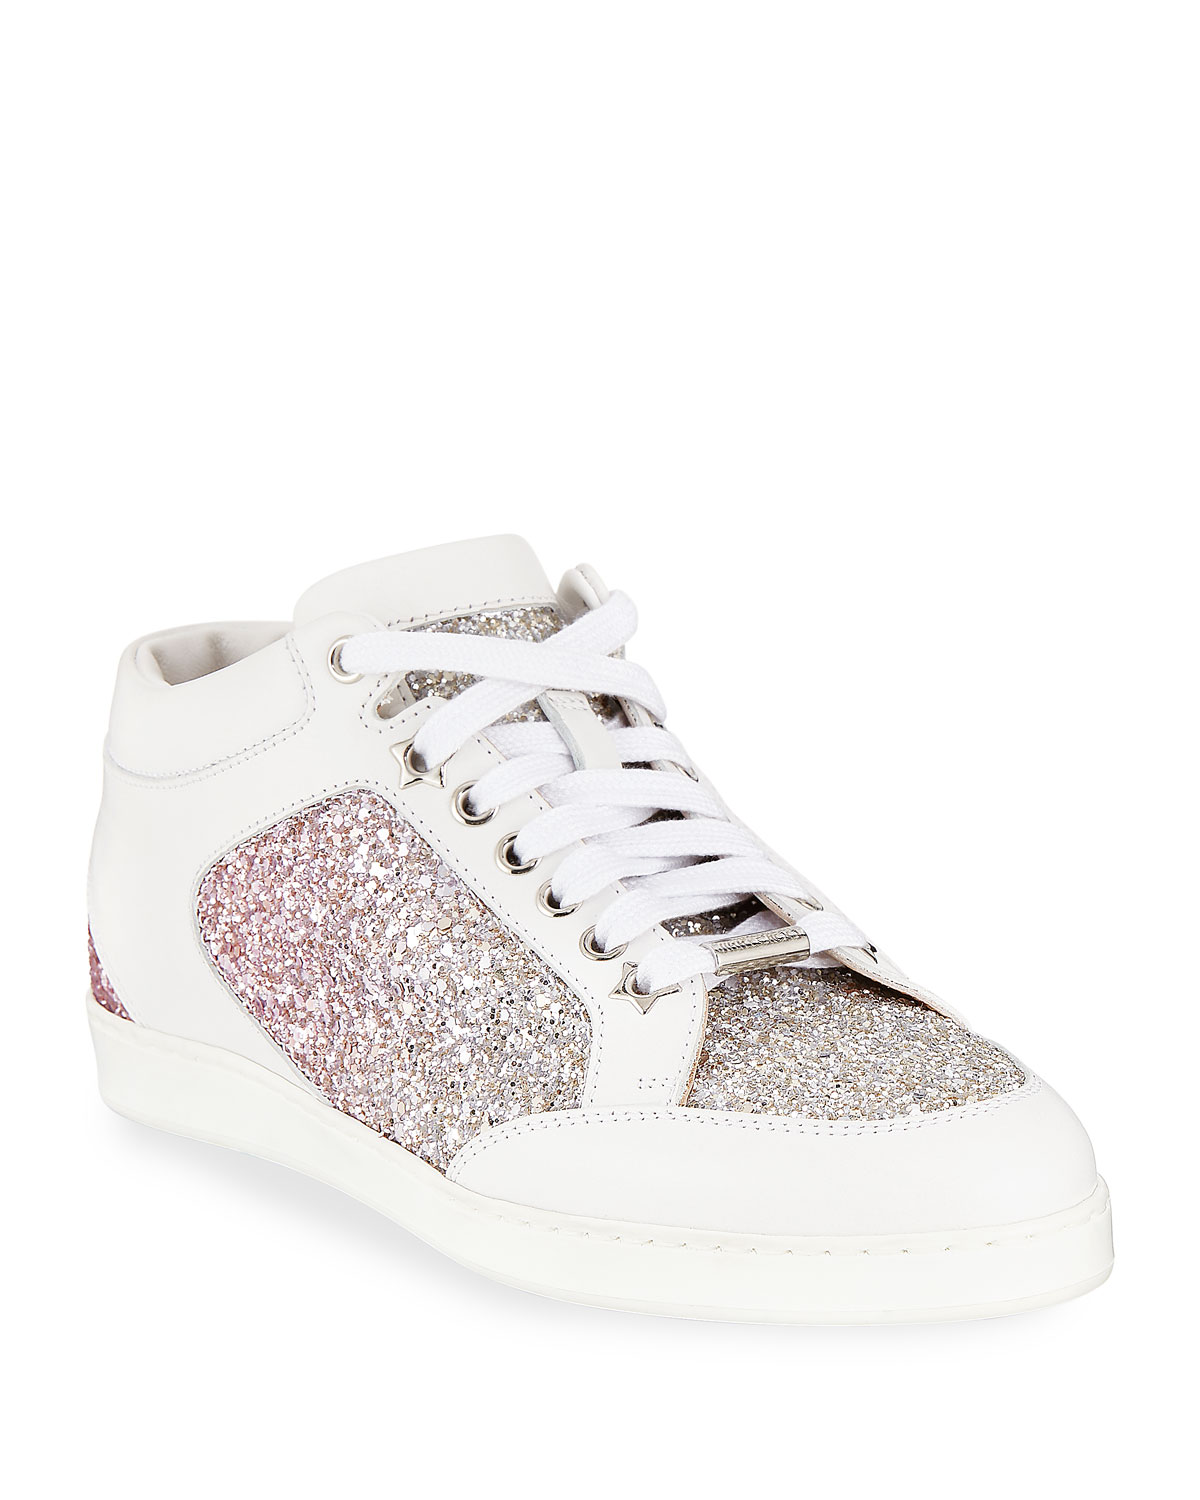 Jimmy Choo Miami Leather and Glitter